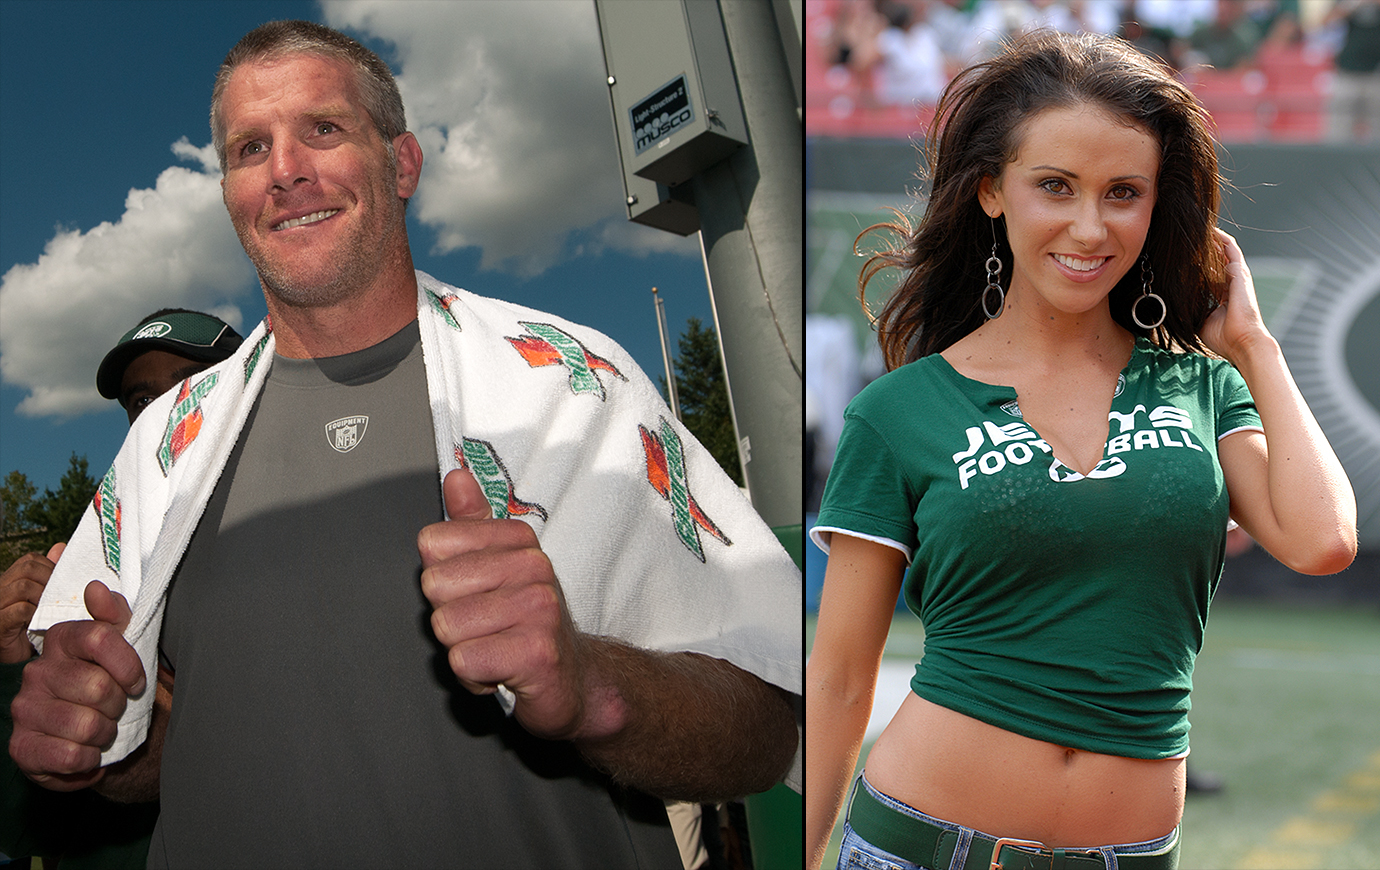 Brett Favre's 2008 season in New York leaves scandal in its wake when team employee Jenn Sterger accuses him of sending inappropriate messages and sexually explicit pictures when the two worked for the Jets. The NFL fined Favre $50,000 for failing to cooperate with its investigation as Favre played out the final games of his career with the Vikings.